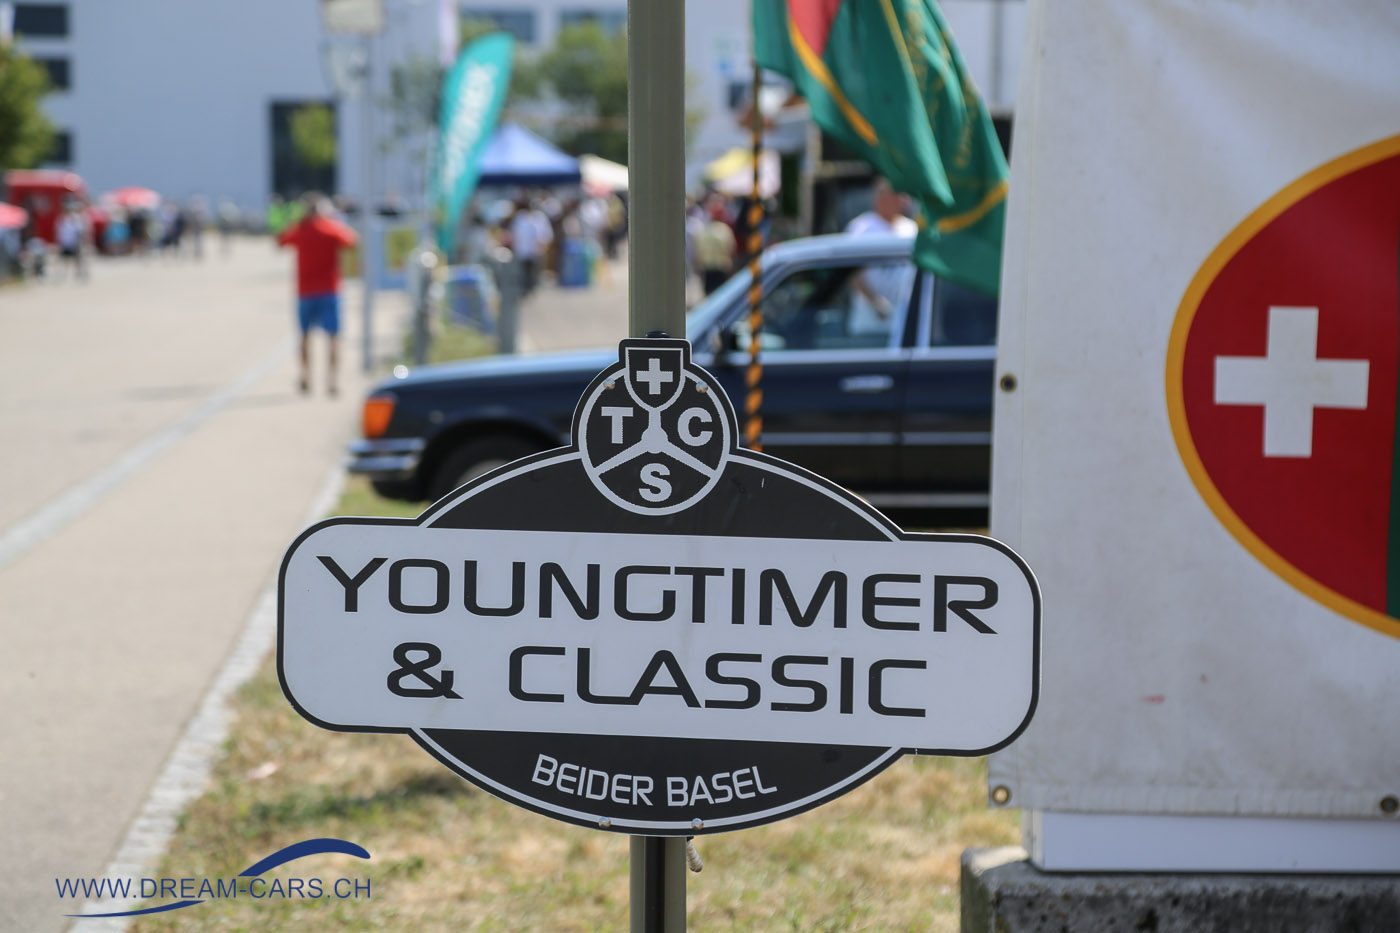 Youngtimer & Classic Pratteln, 14.07.2018